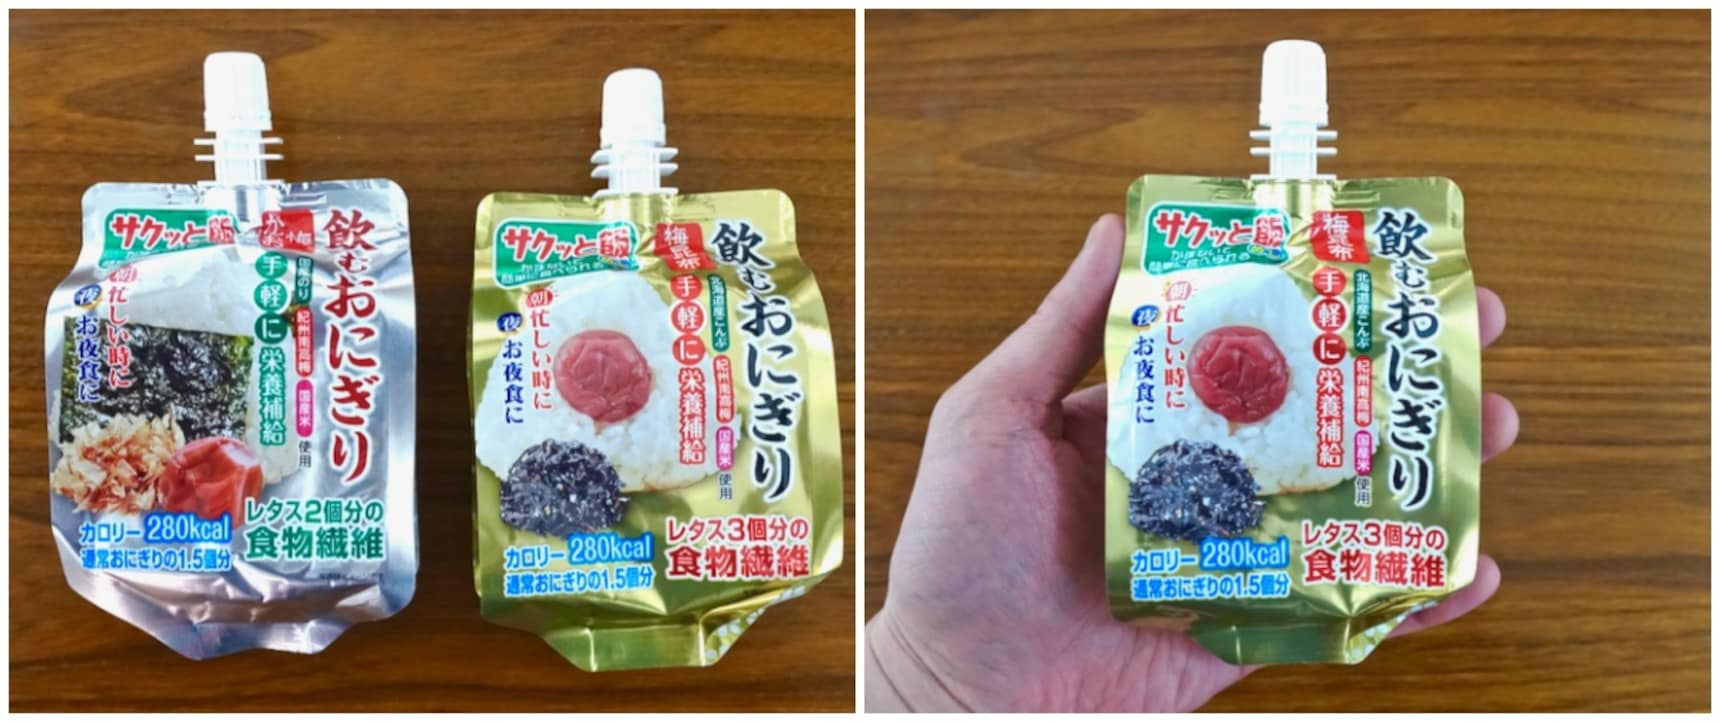 Japanese Onigiri: Now a Refreshing Beverage?